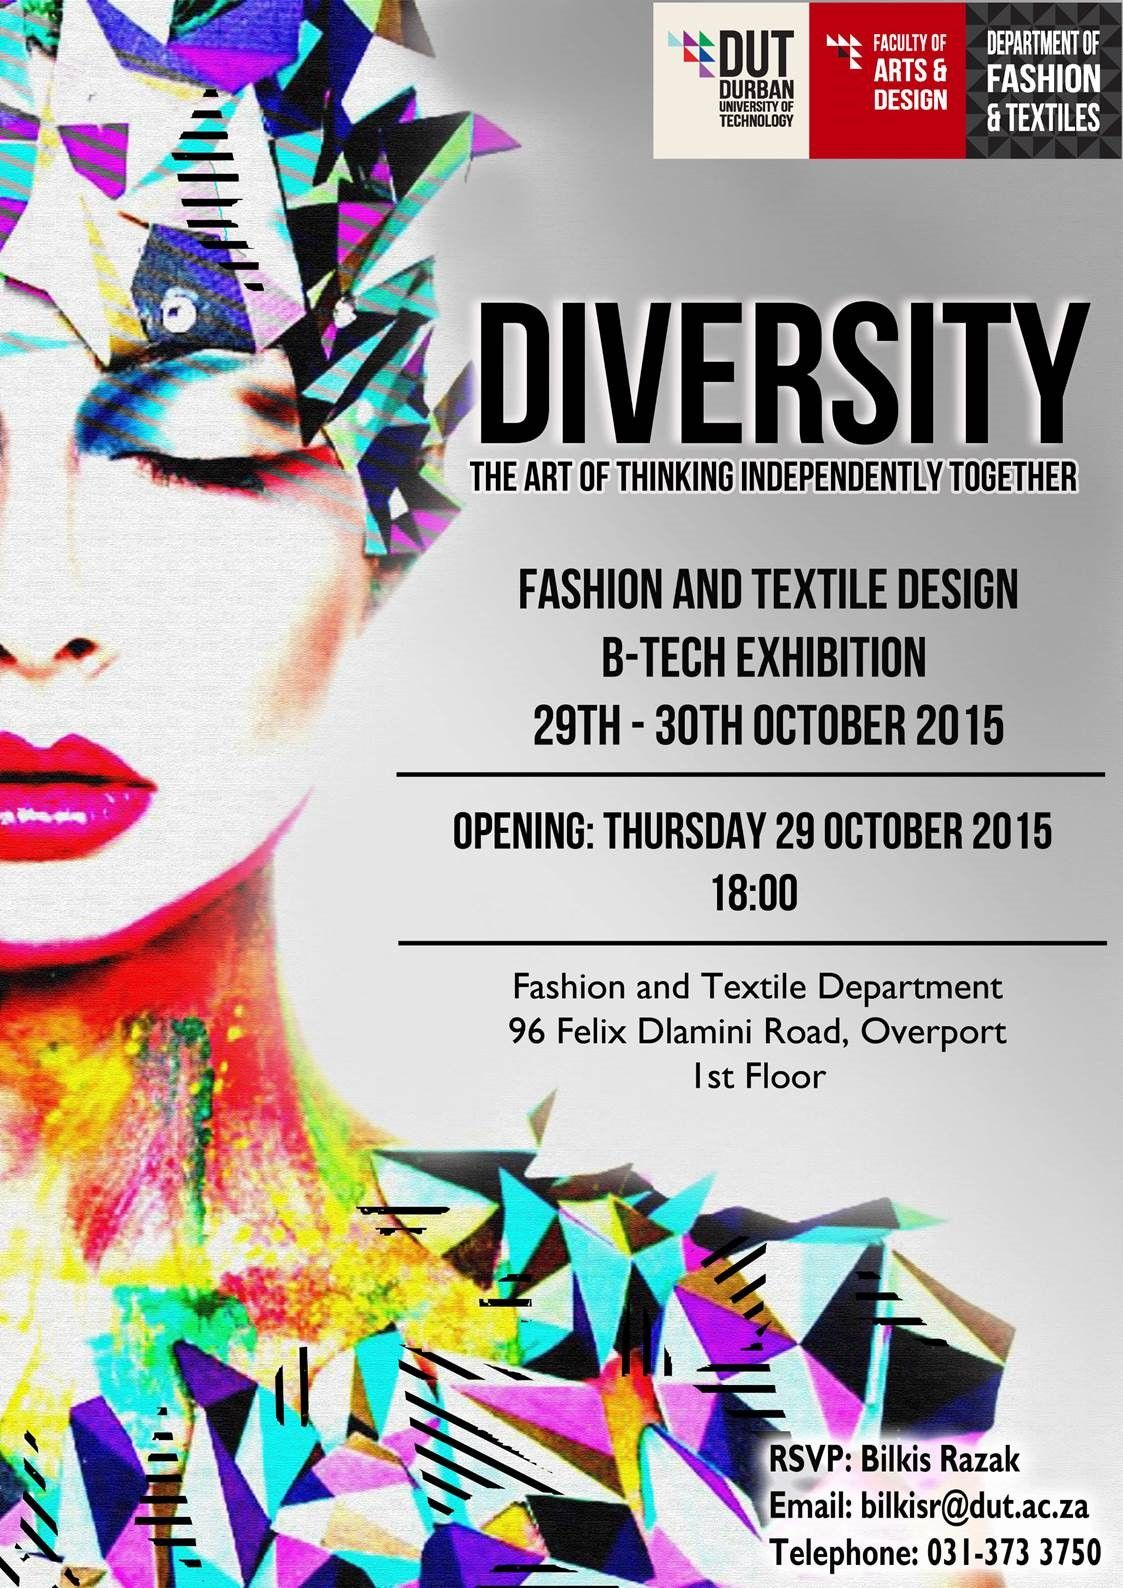 Fashion And Textile Btech Exhibition #event #poster